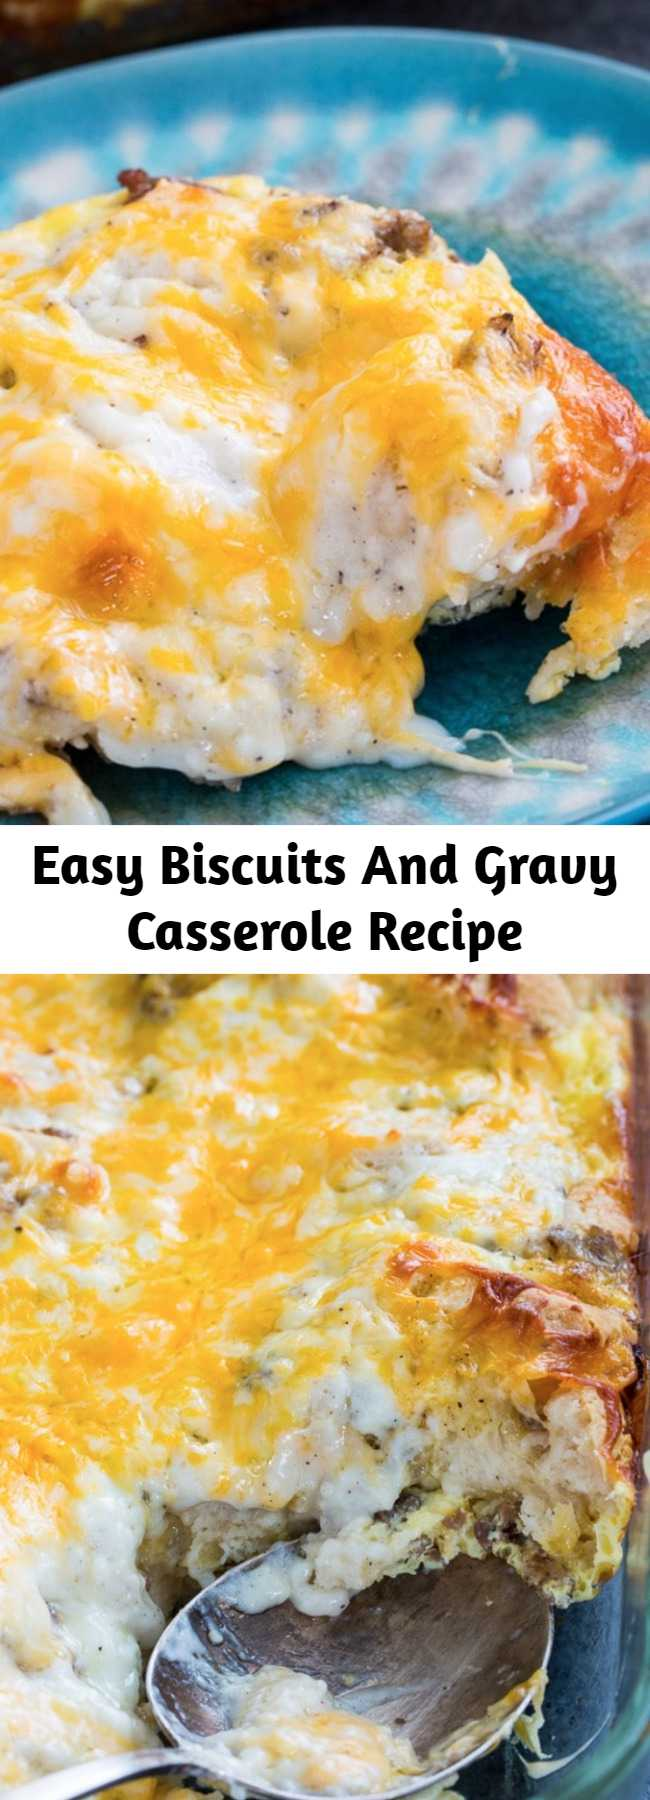 Easy Biscuits And Gravy Casserole Recipe - Biscuits and Gravy Casserole has all the flavor of the southern classic-Biscuits and Sausage Gravy, in casserole form and it couldn't be easier to make.